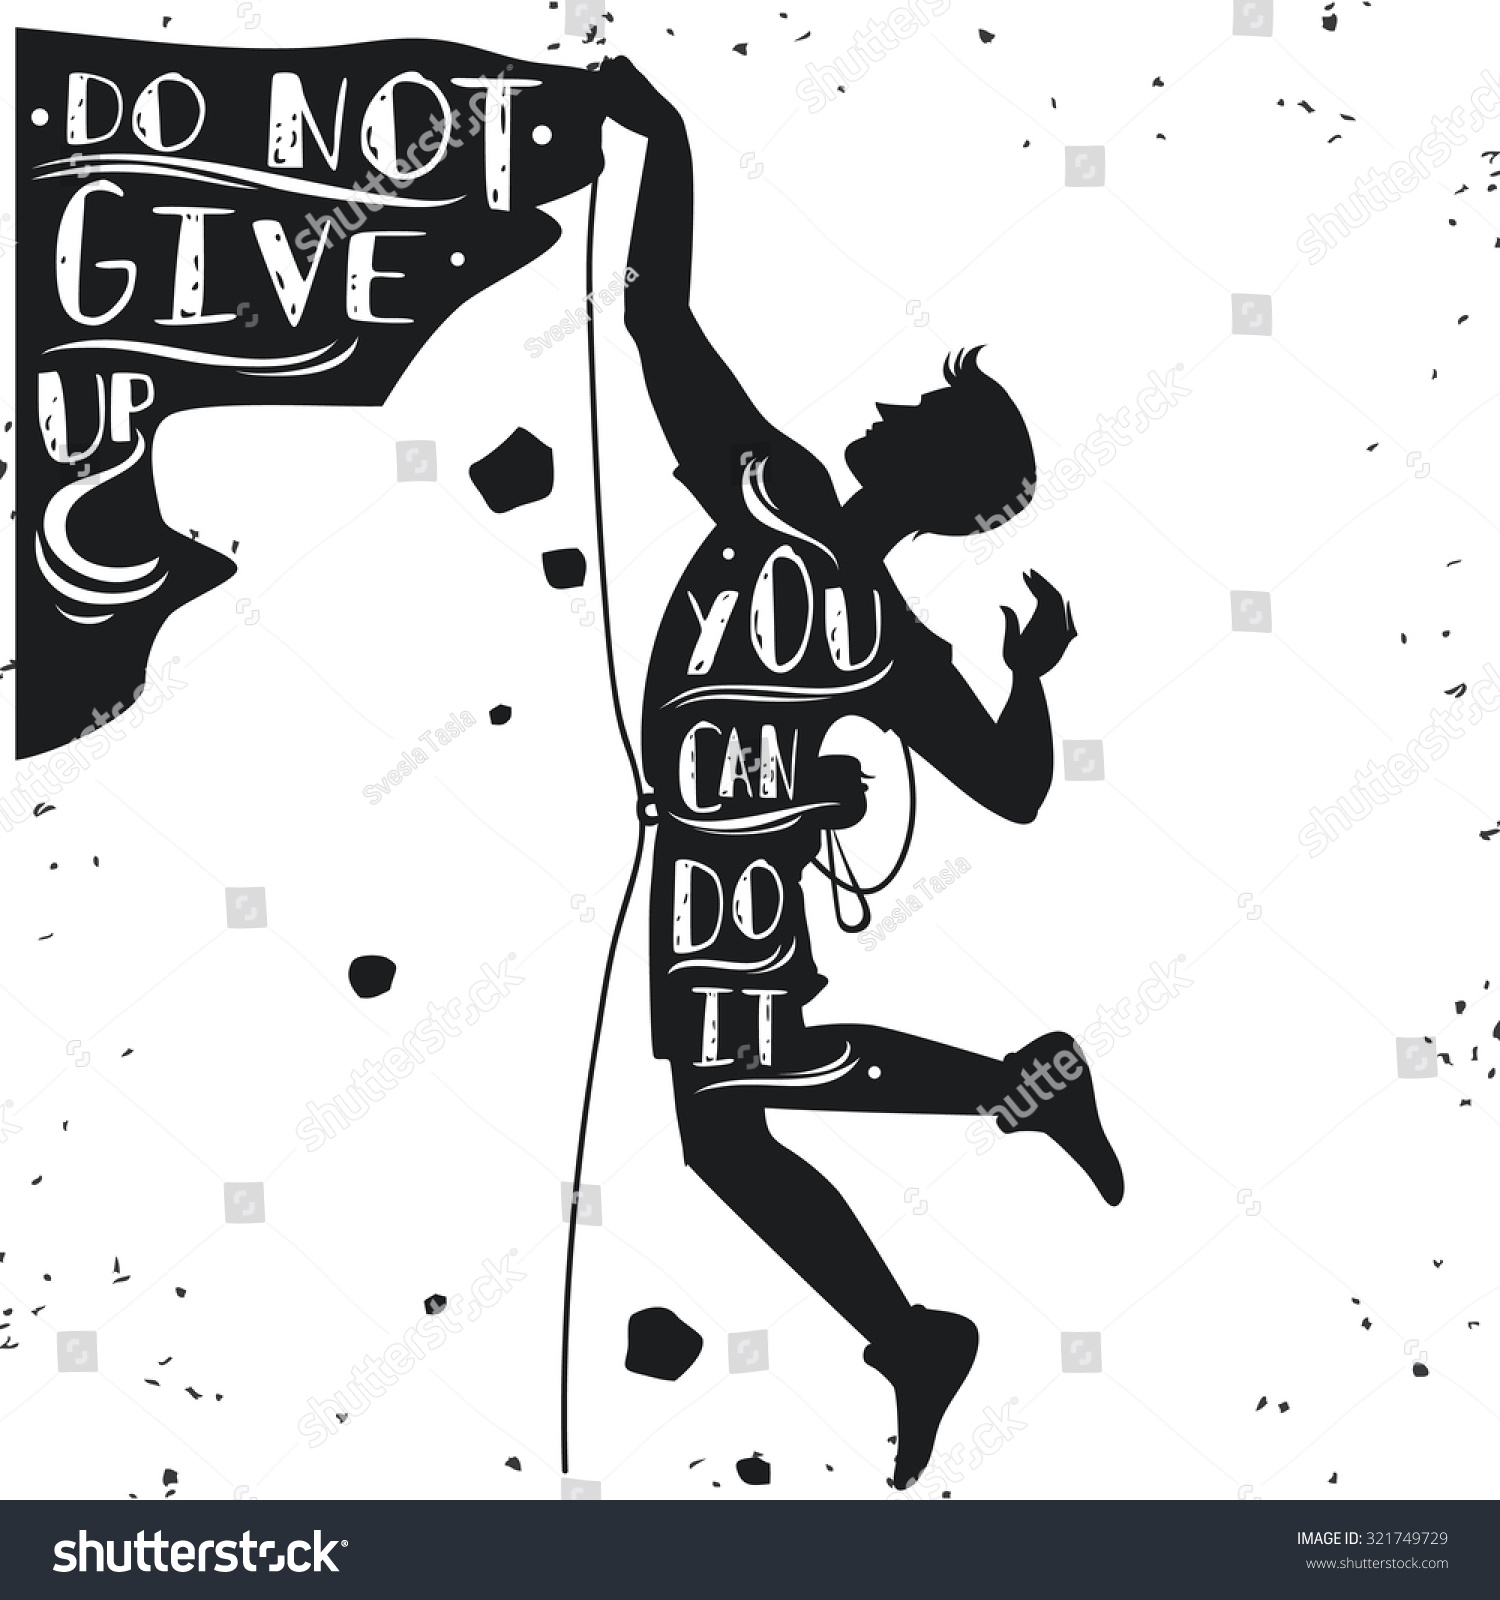 T shirt design inspiration typography - Motivational And Inspirational Typography Poster With Quote Do Not Give Up You Can Do